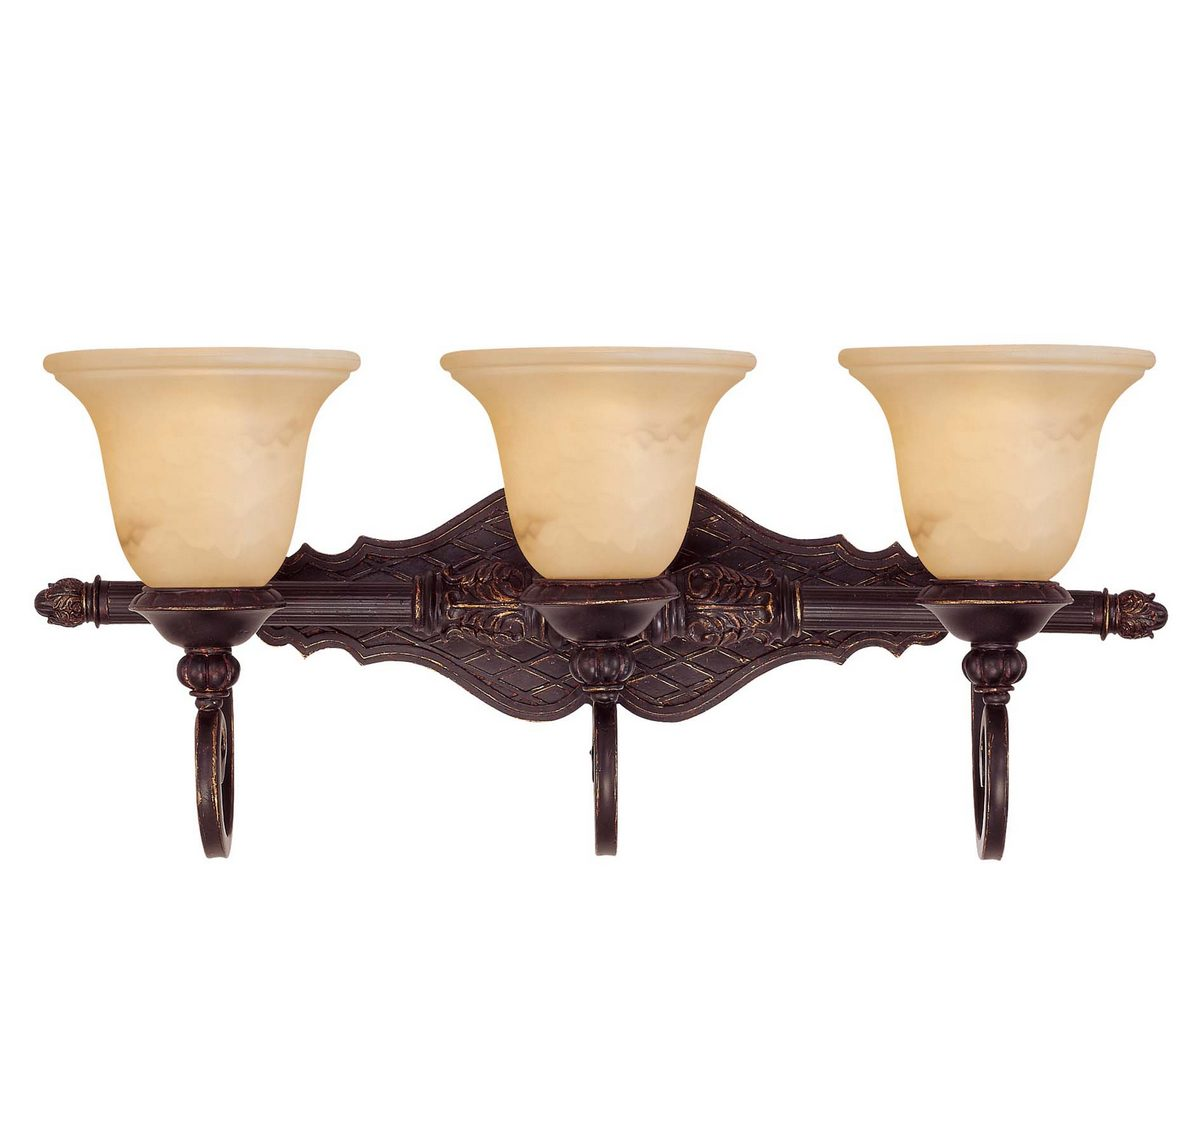 Savoy House Knight 3-Light Vanity Bar in Antique Copper